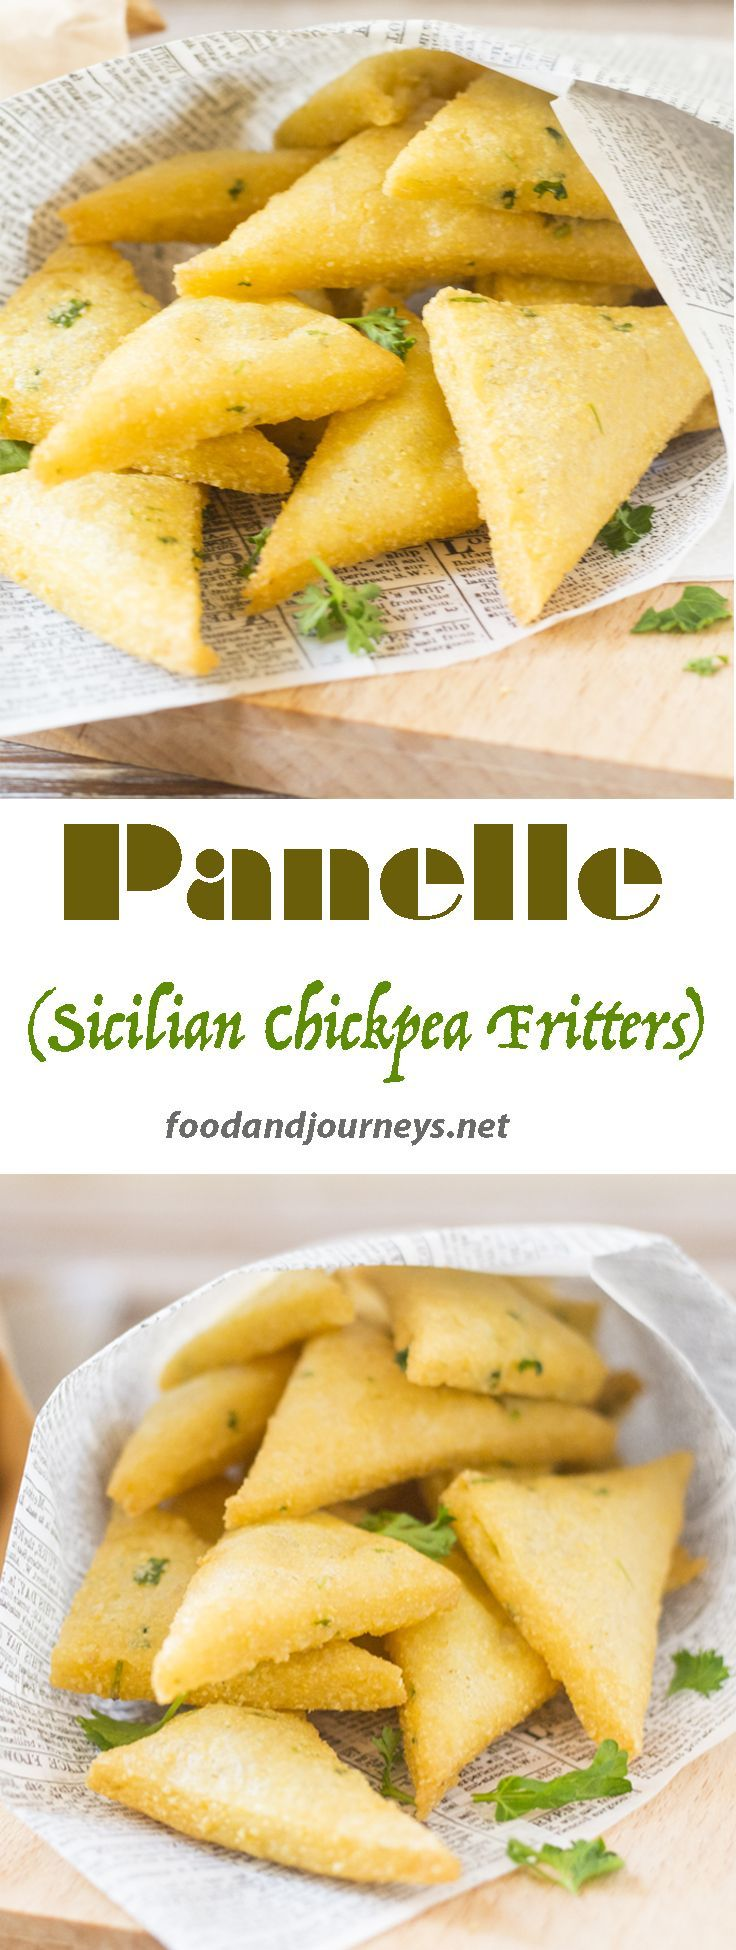 Photo of Panelle (Sicilian Chickpea Fritters)